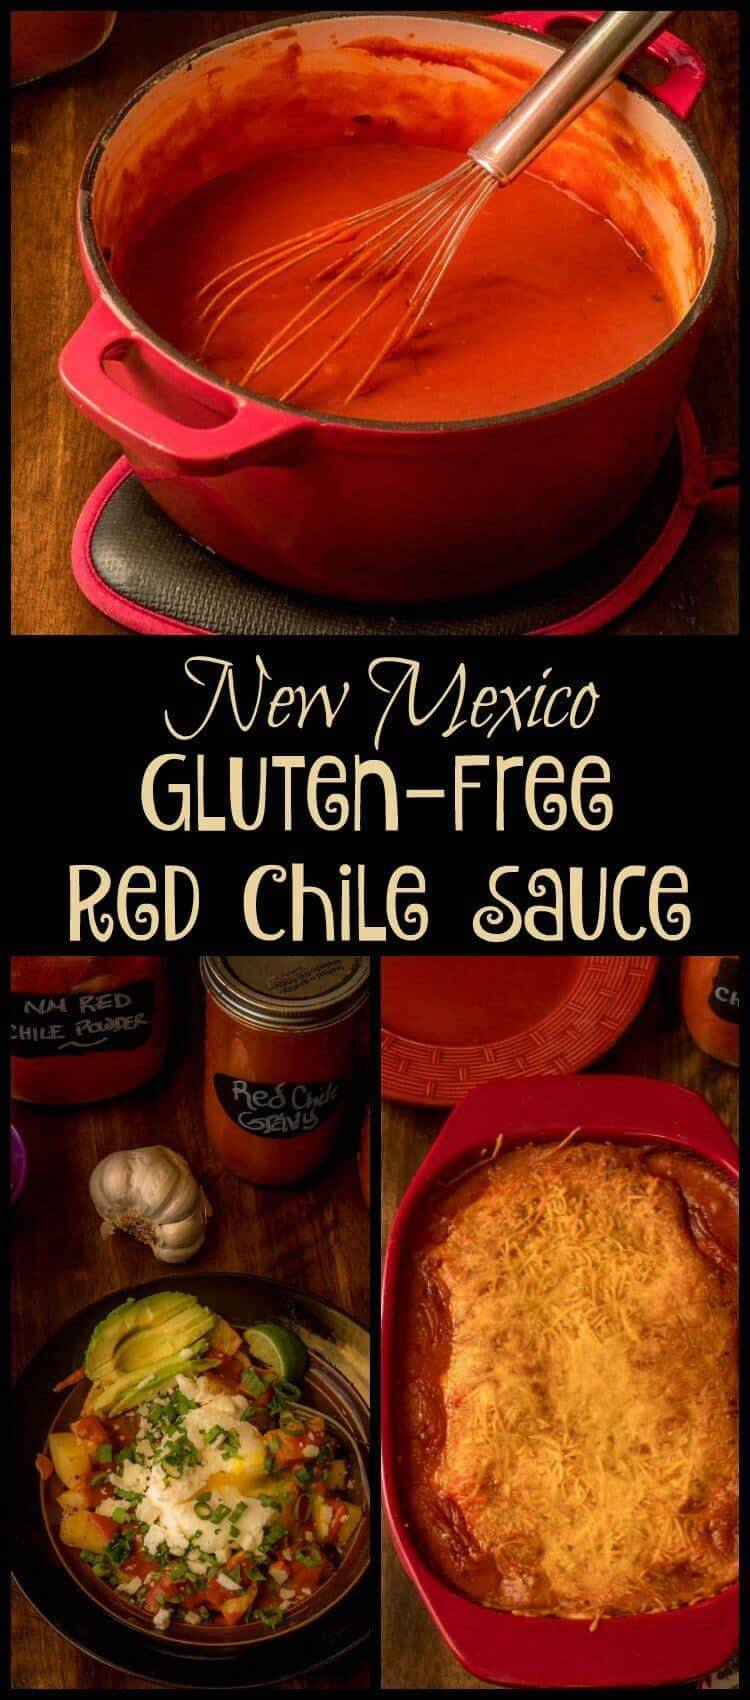 """New Mexico Gluten-Free Red Chile Sauce Pin -= All the intense, earthy, smoky flavor of """"regular"""" New Mexico red chile sauce awaits in my New Mexico Gluten-Free Red Chile Sauce... In fact, I'd wager you cannot tell the difference side by side! #BobsRedMill #glutenfreeflour #NMredchilesauce #redchilesauce #NMchile #redchileenchiladas"""